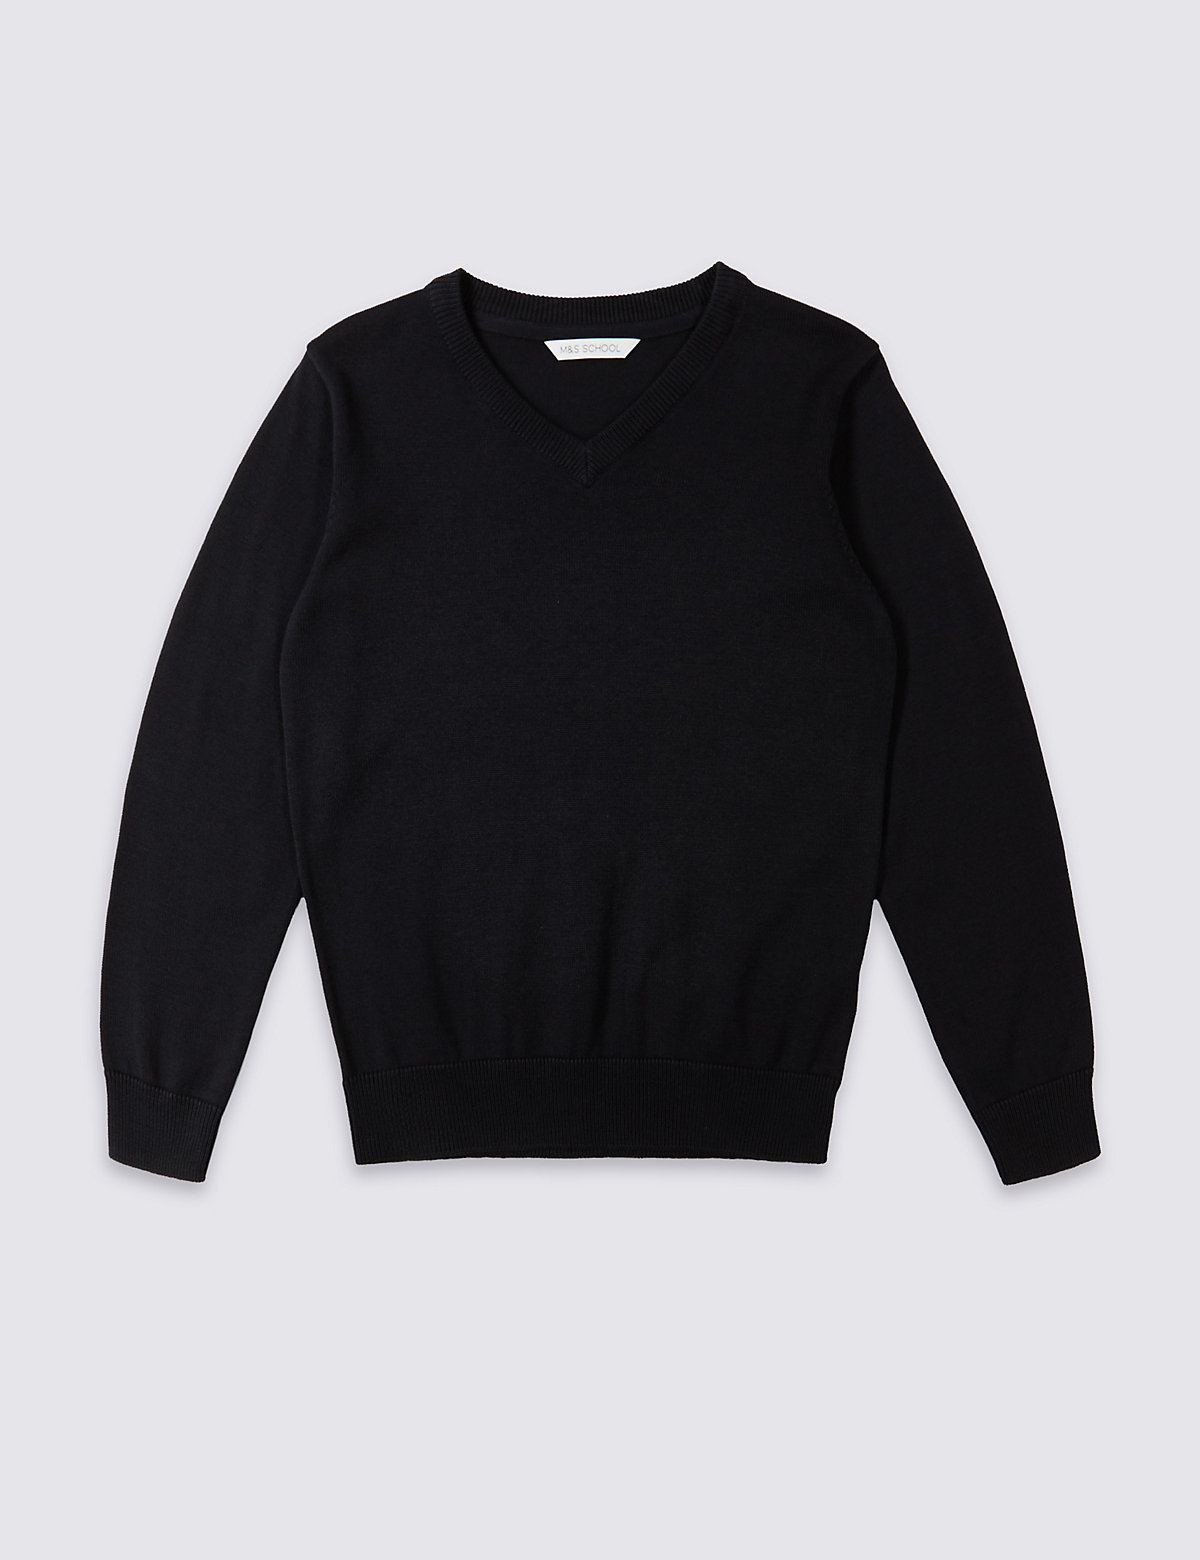 Outstanding Value Unisex Pure Cotton Jumper with StayNEW